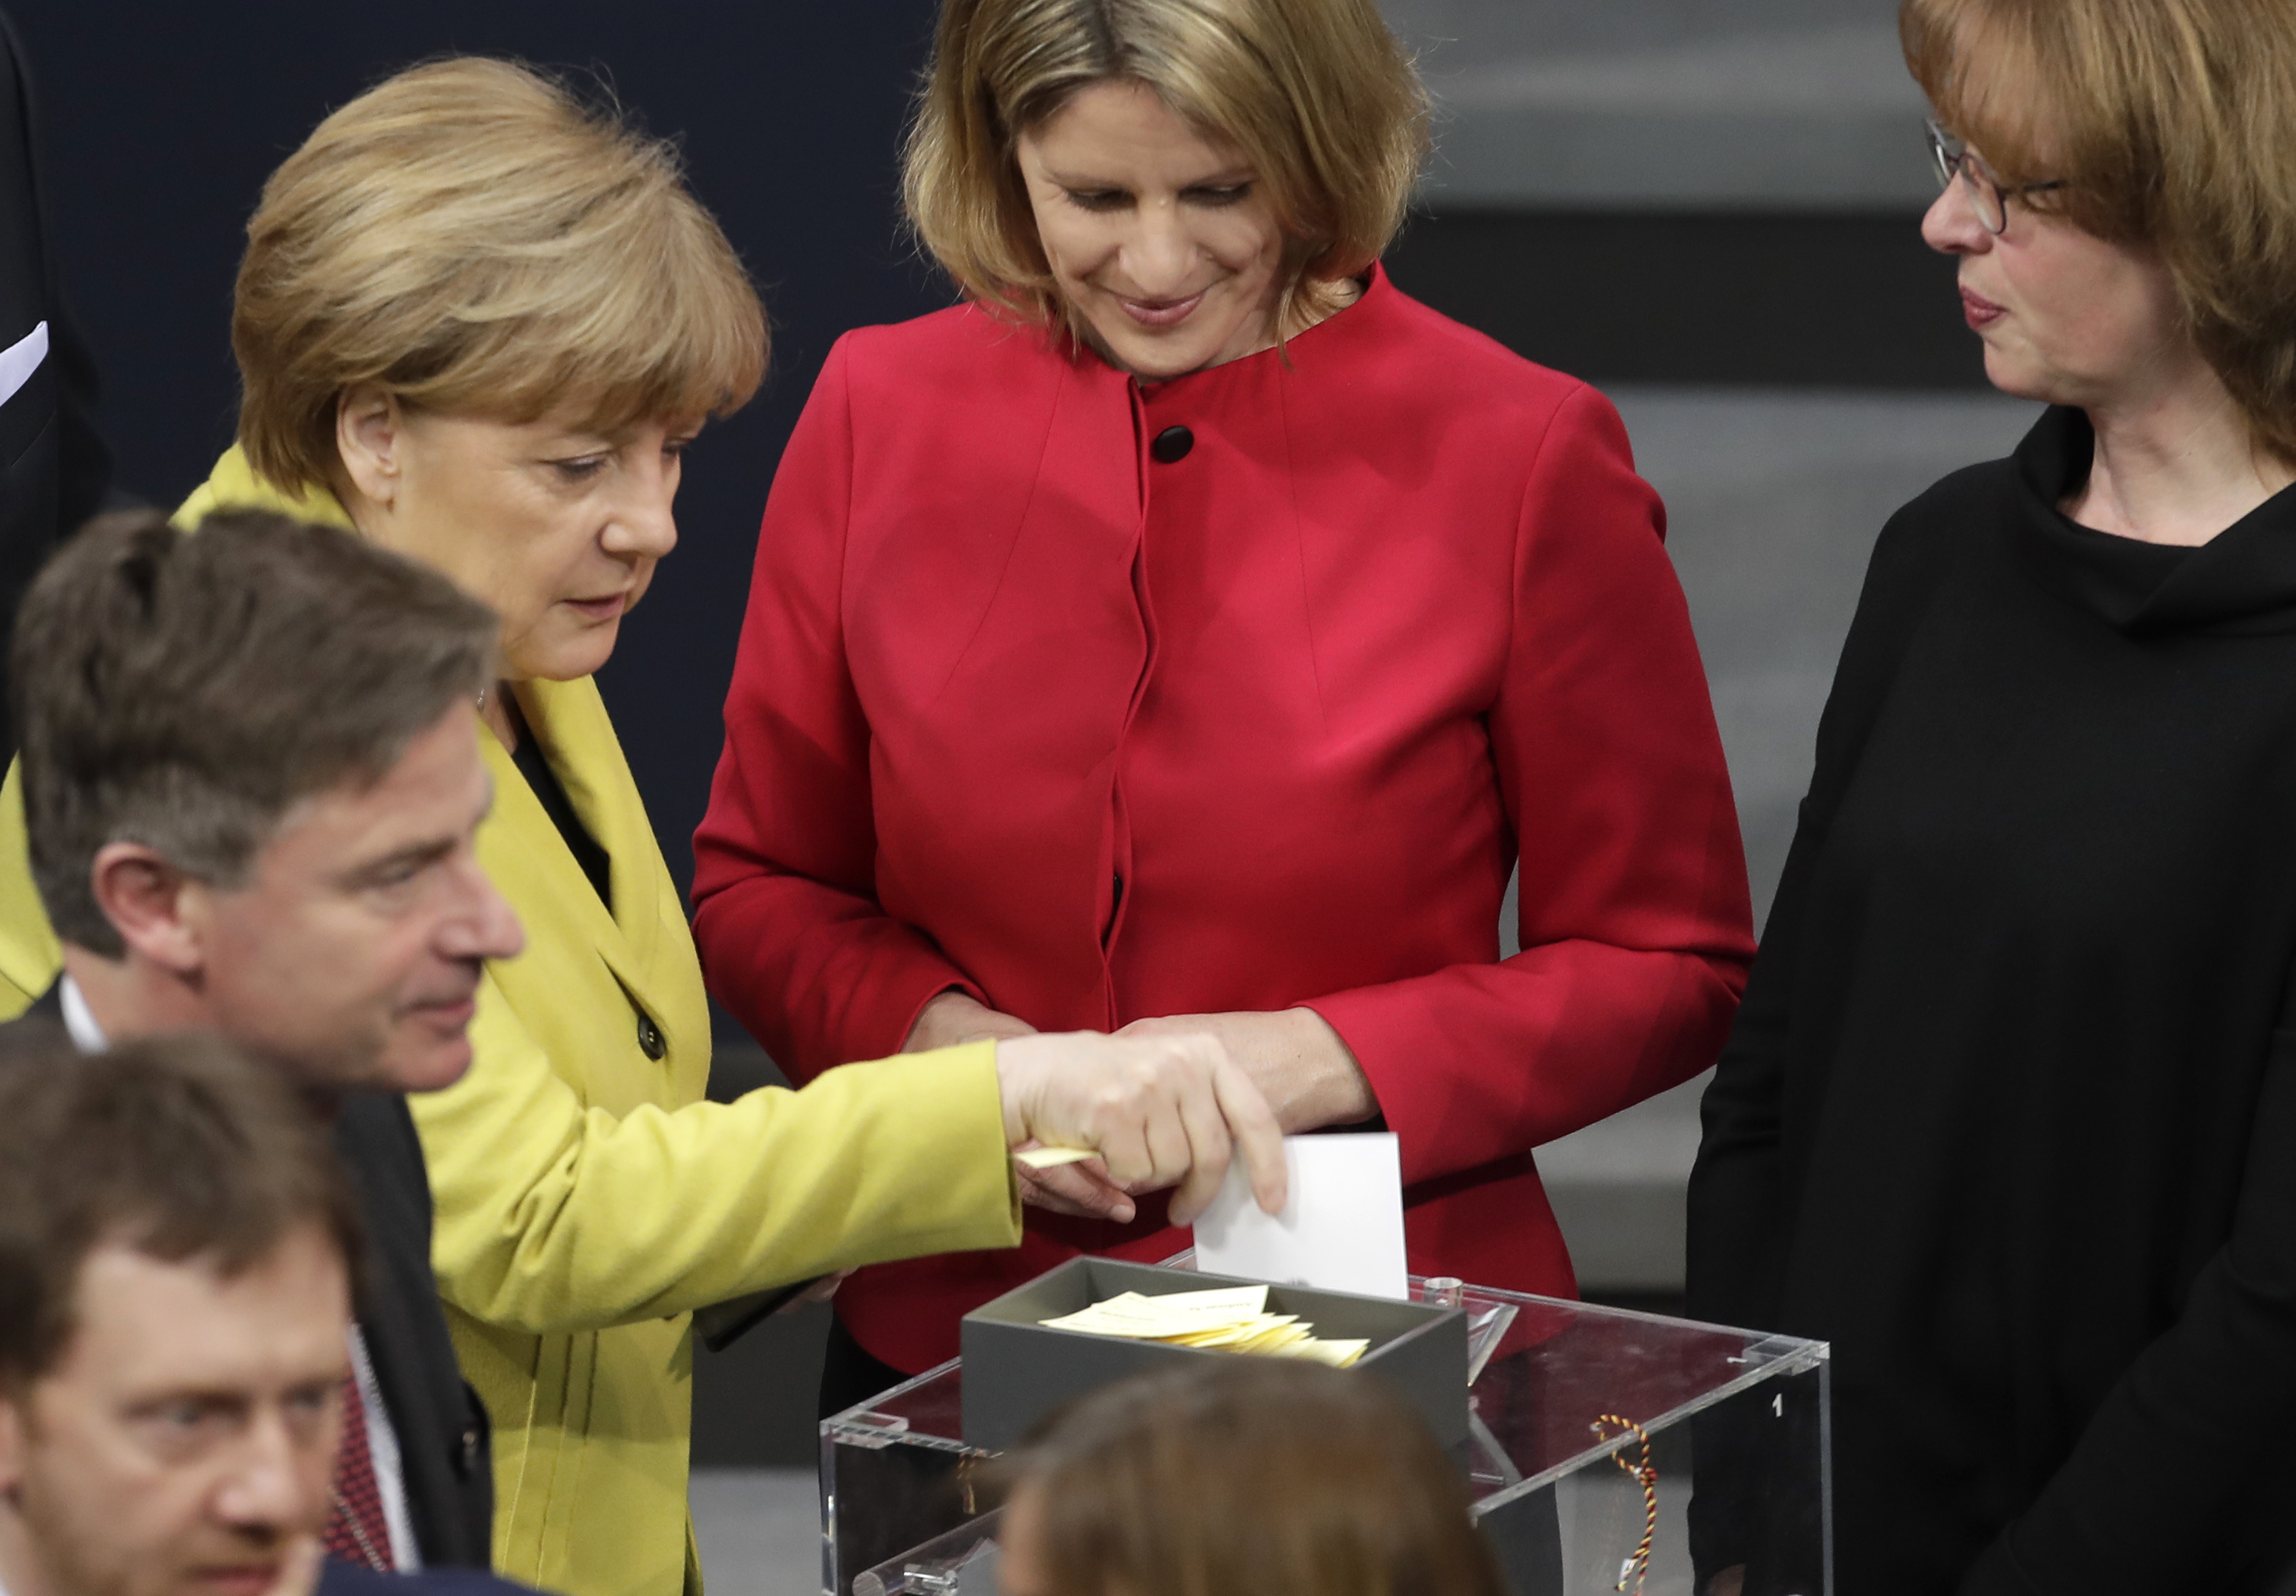 German Chancellor Angela Merkel (L) casts her ballot when a German parliamentary assembly came together to elect the country's new president in Berlin, Germany on Feb. 12, 2017. (AP Photo/Markus Schreiber)